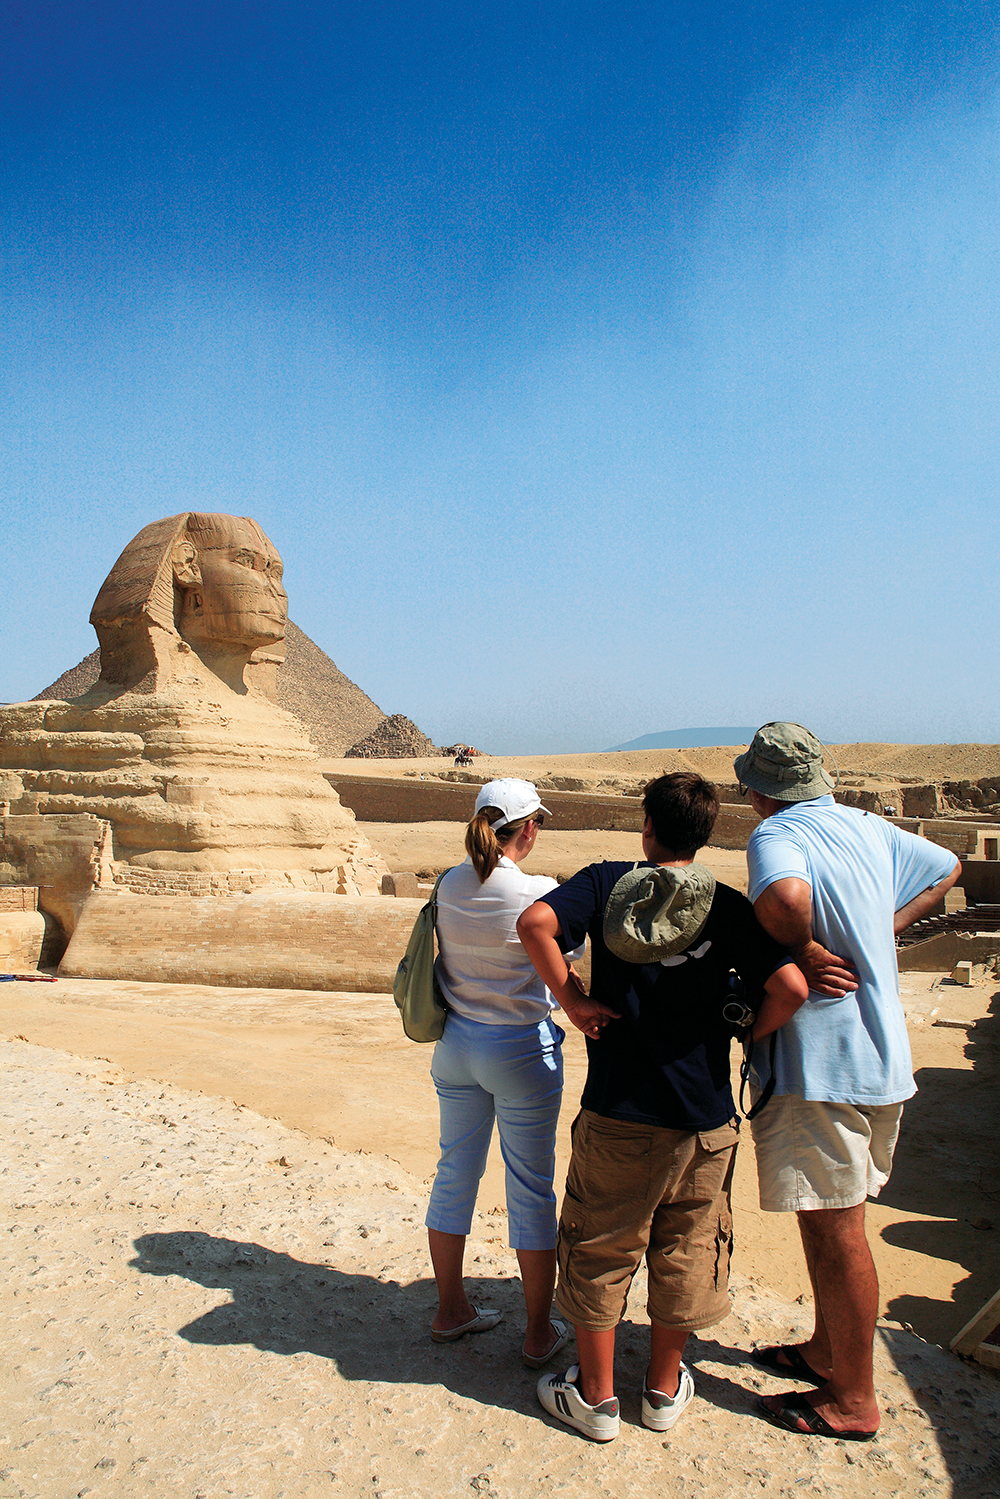 Views of the Sphinx / Egypt Tourist Board